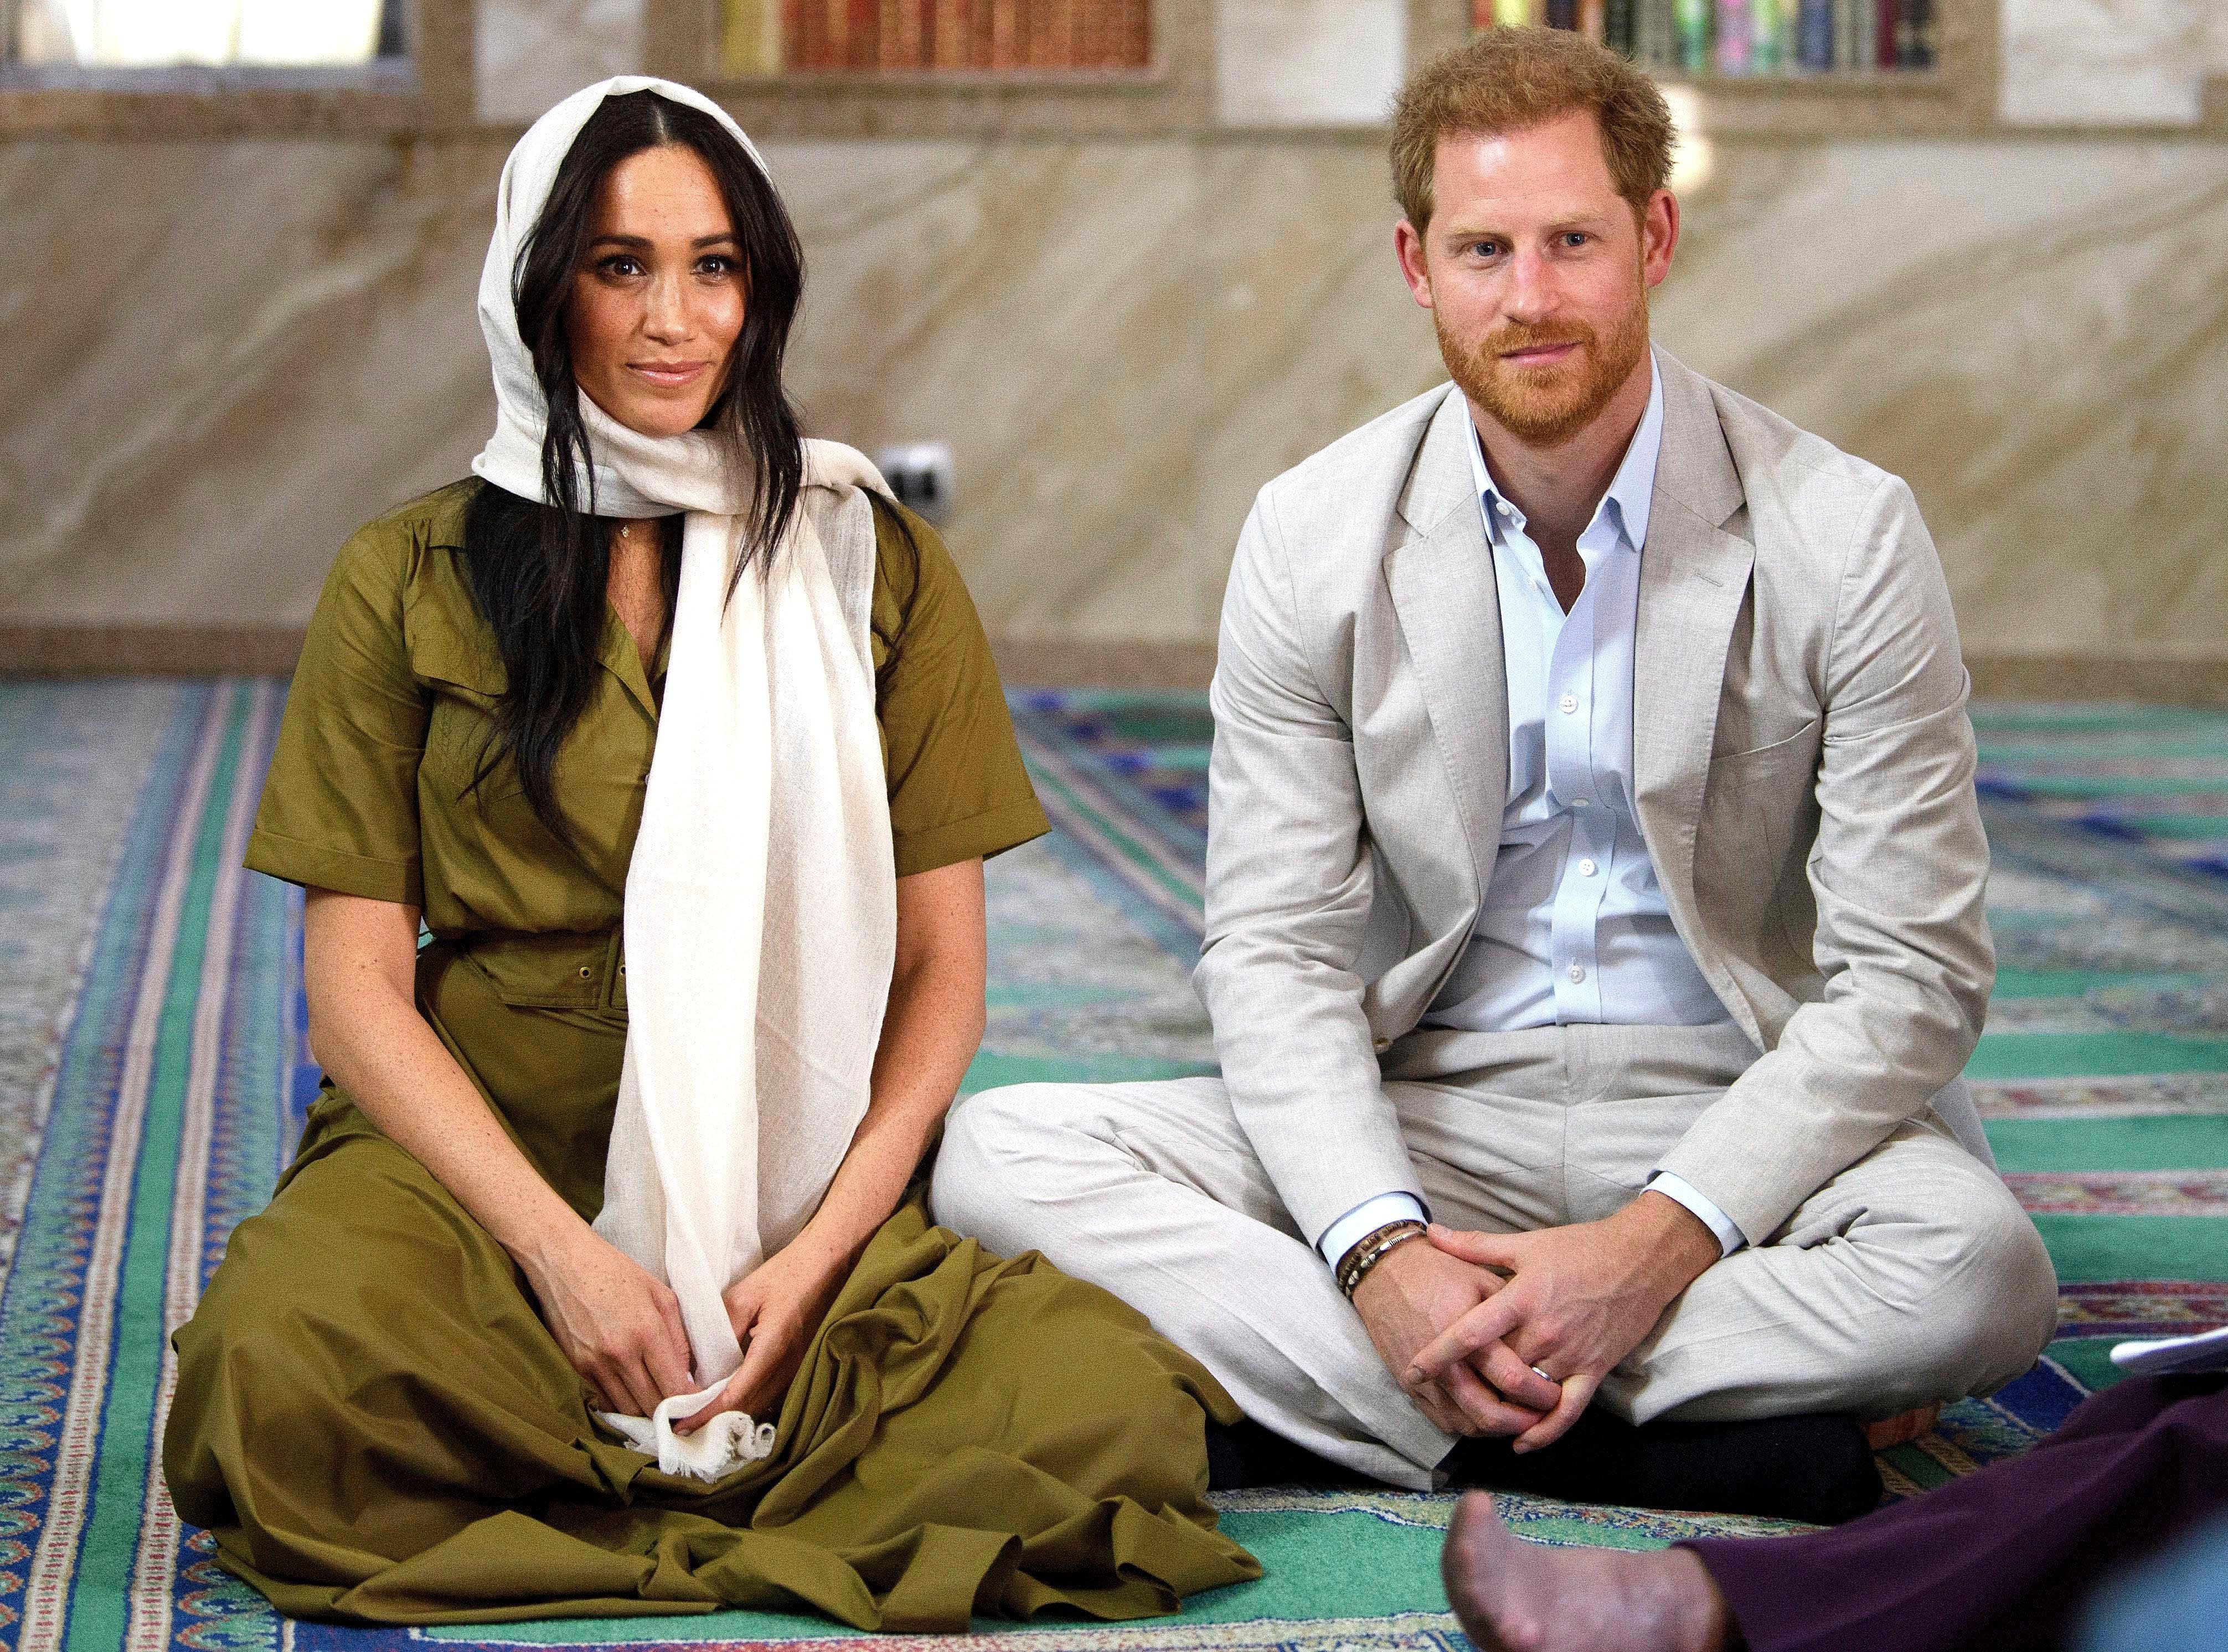 Meghan Markle and Prince Harry in the Auwal Mosque during their royal tour of South African on September 24, 2019 | Photo: Getty Images